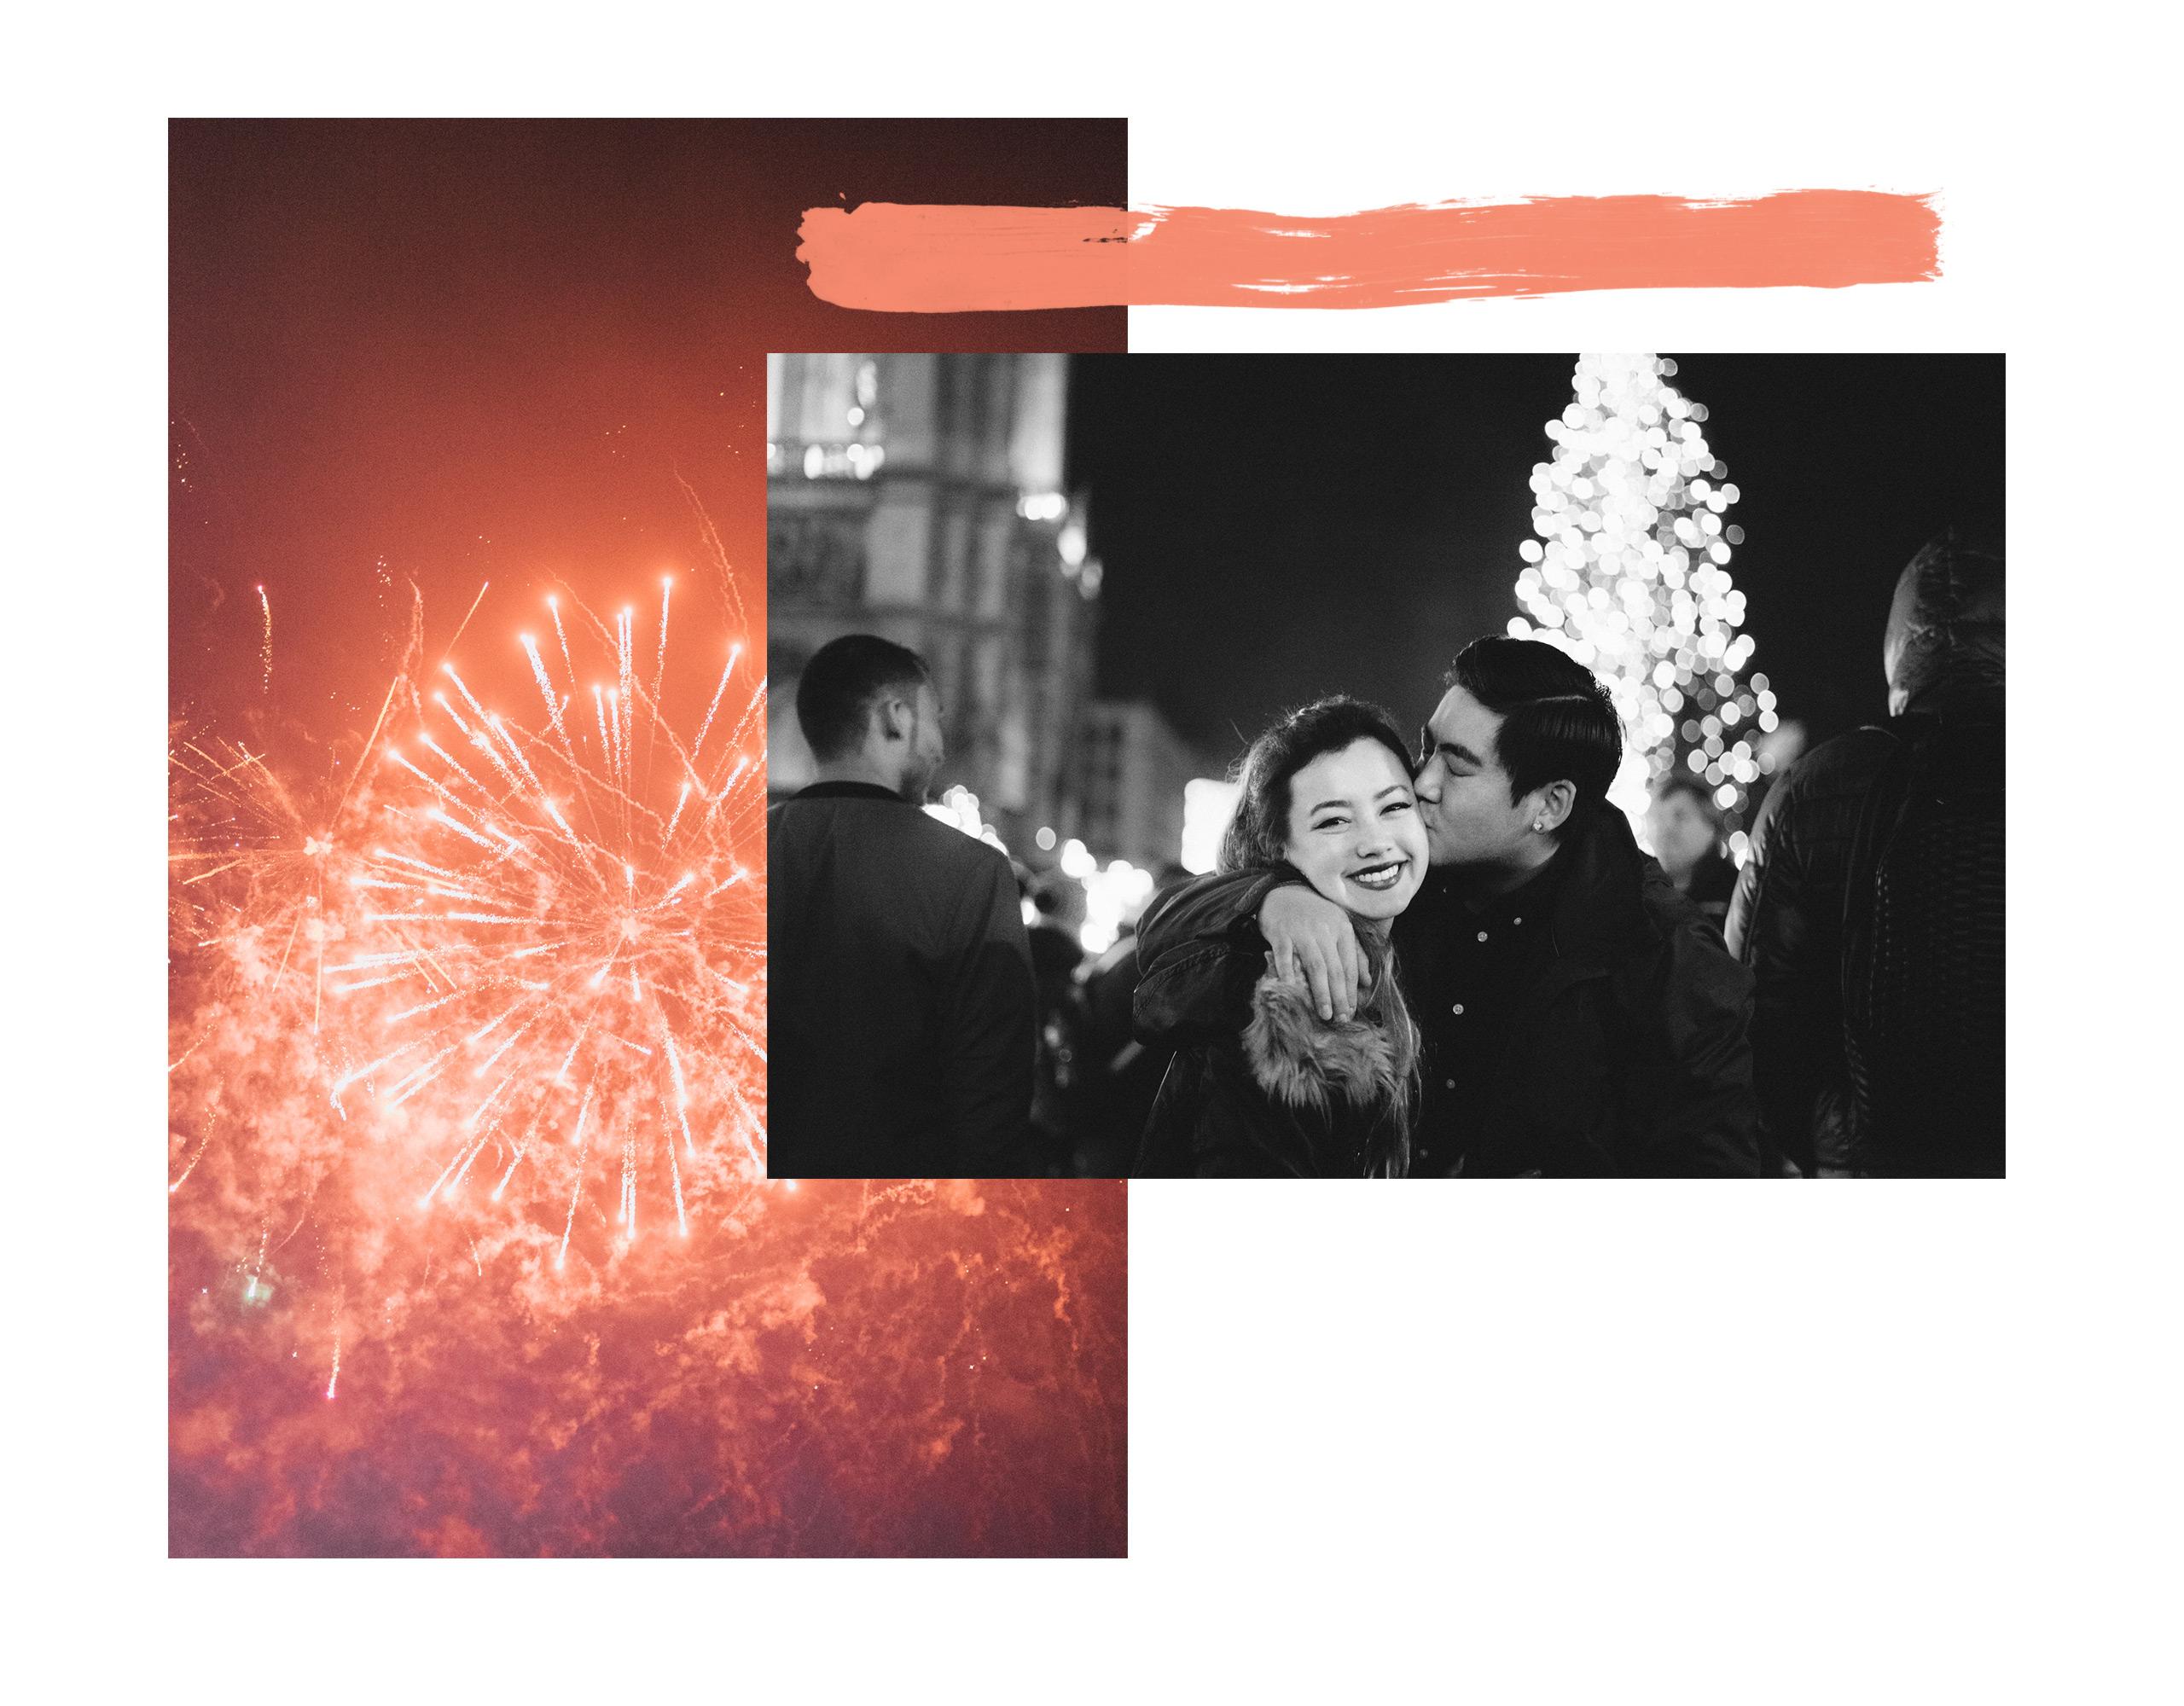 New Year's Eve in Vienna | thetravelsketch.com